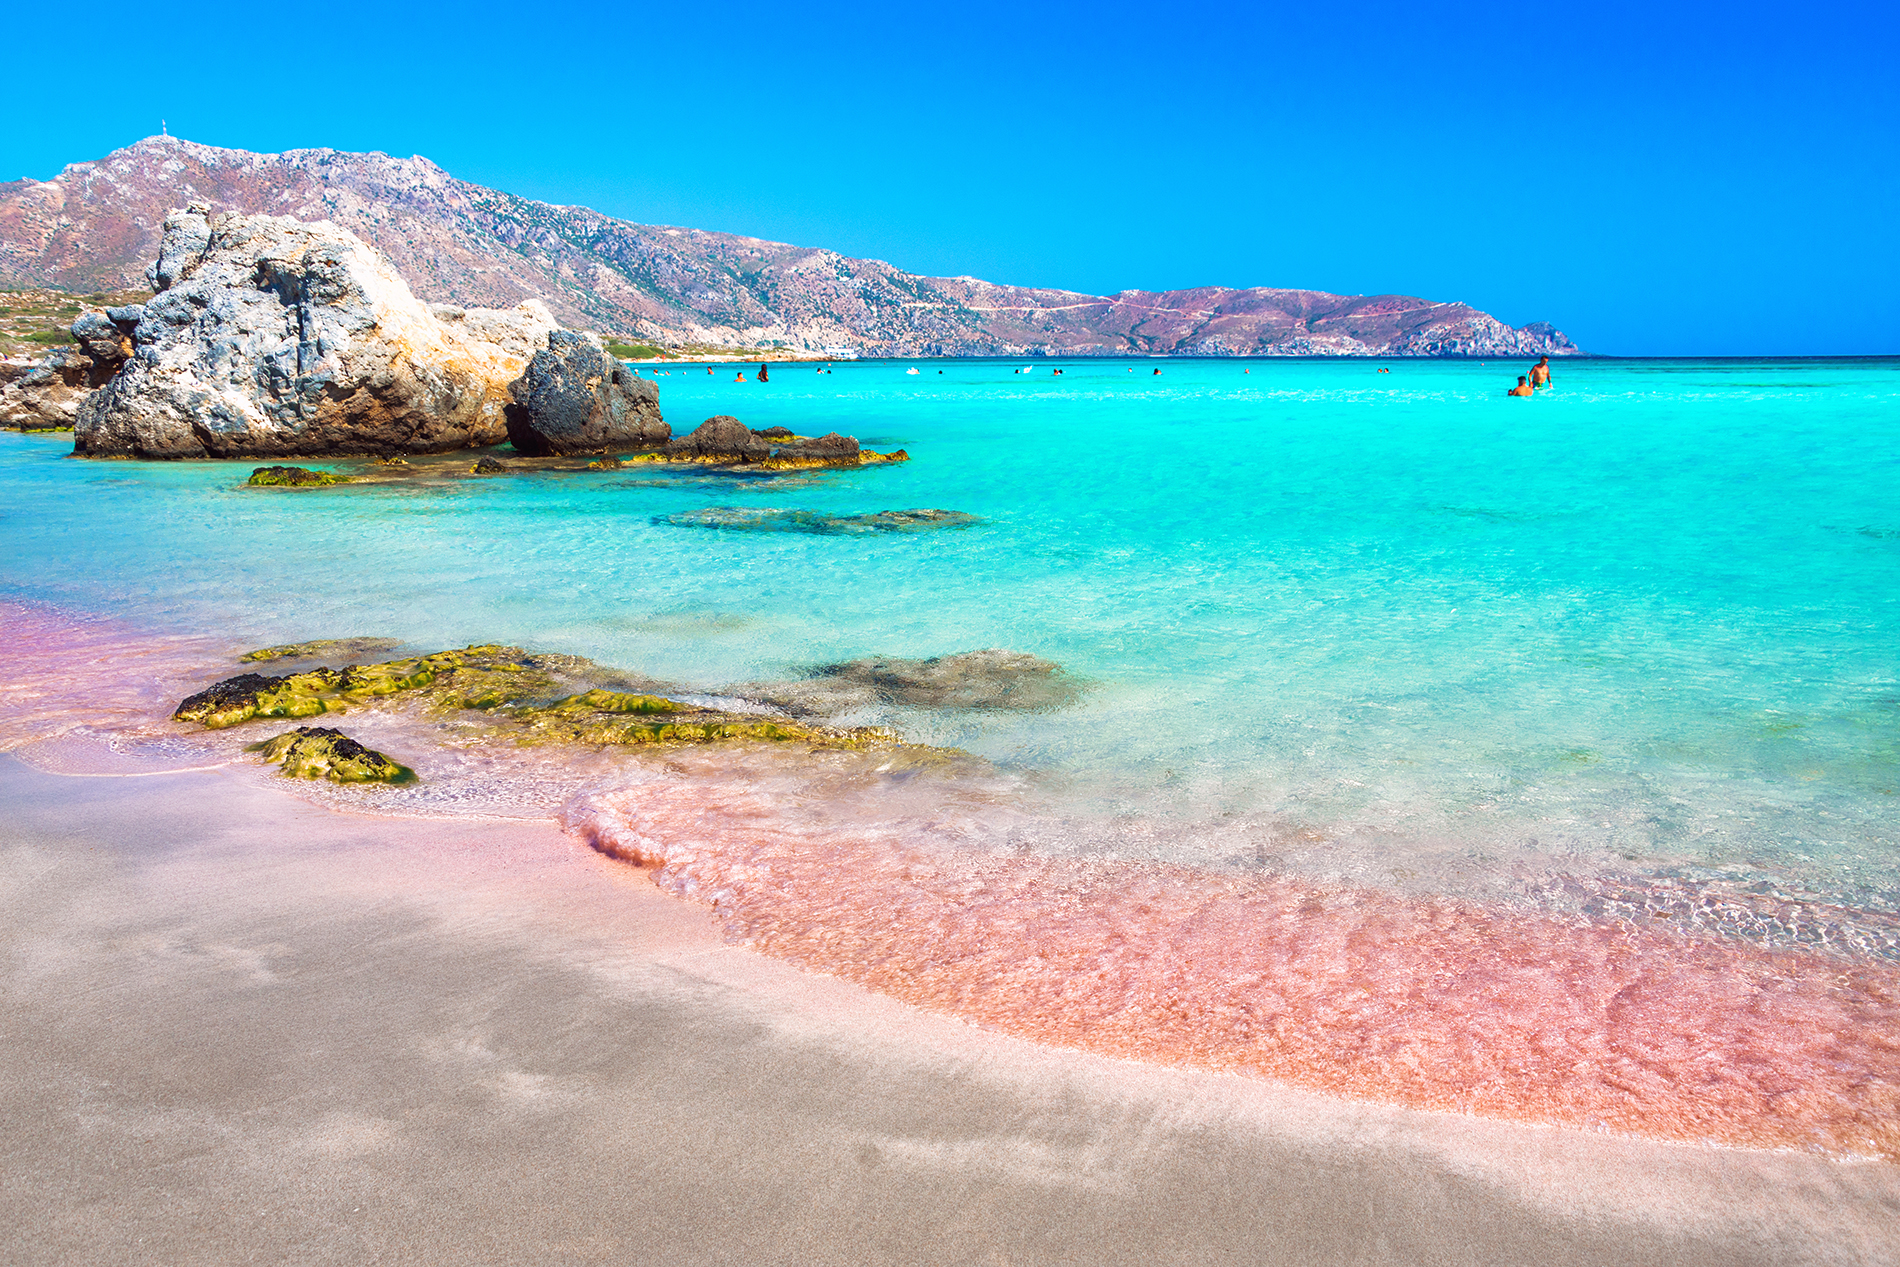 The beach stretches nearly the length of the island. The Best Pink Sand Beaches Around The World